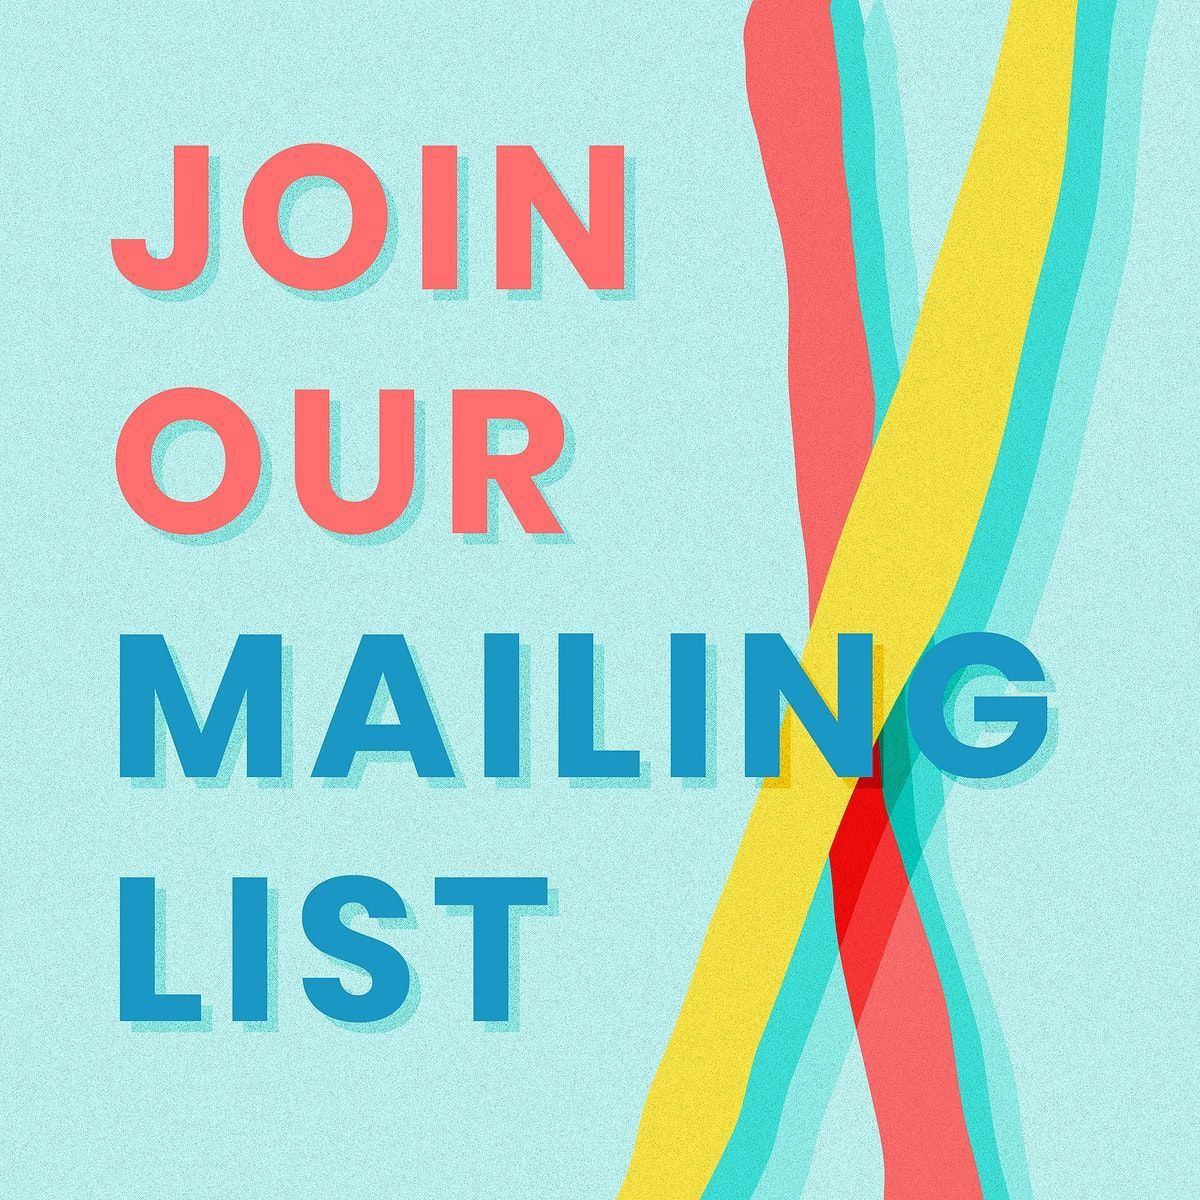 003 Surprising Join Our Mailing List Template Highest Clarity  EmailFull